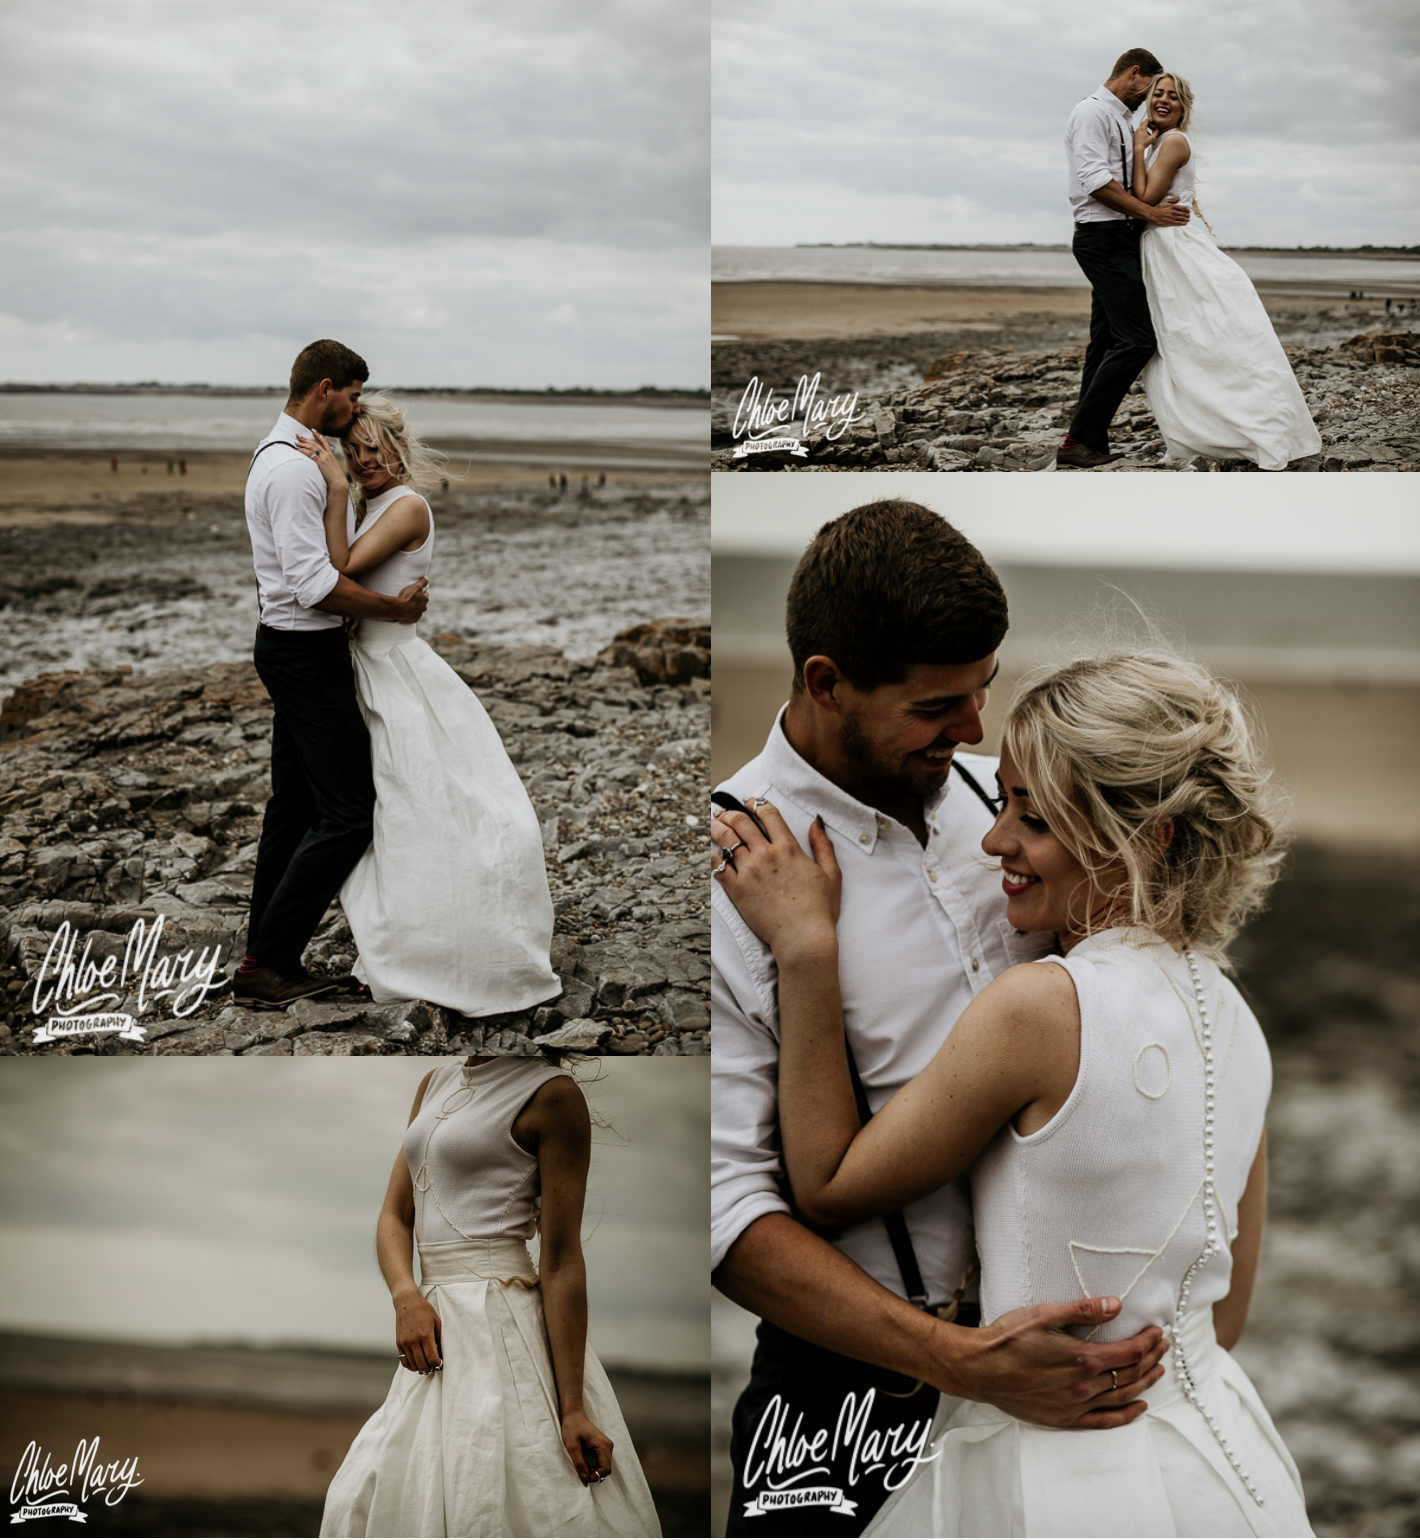 Chloe Mary Photo Eco Beach Elopement with Coop Couture dress